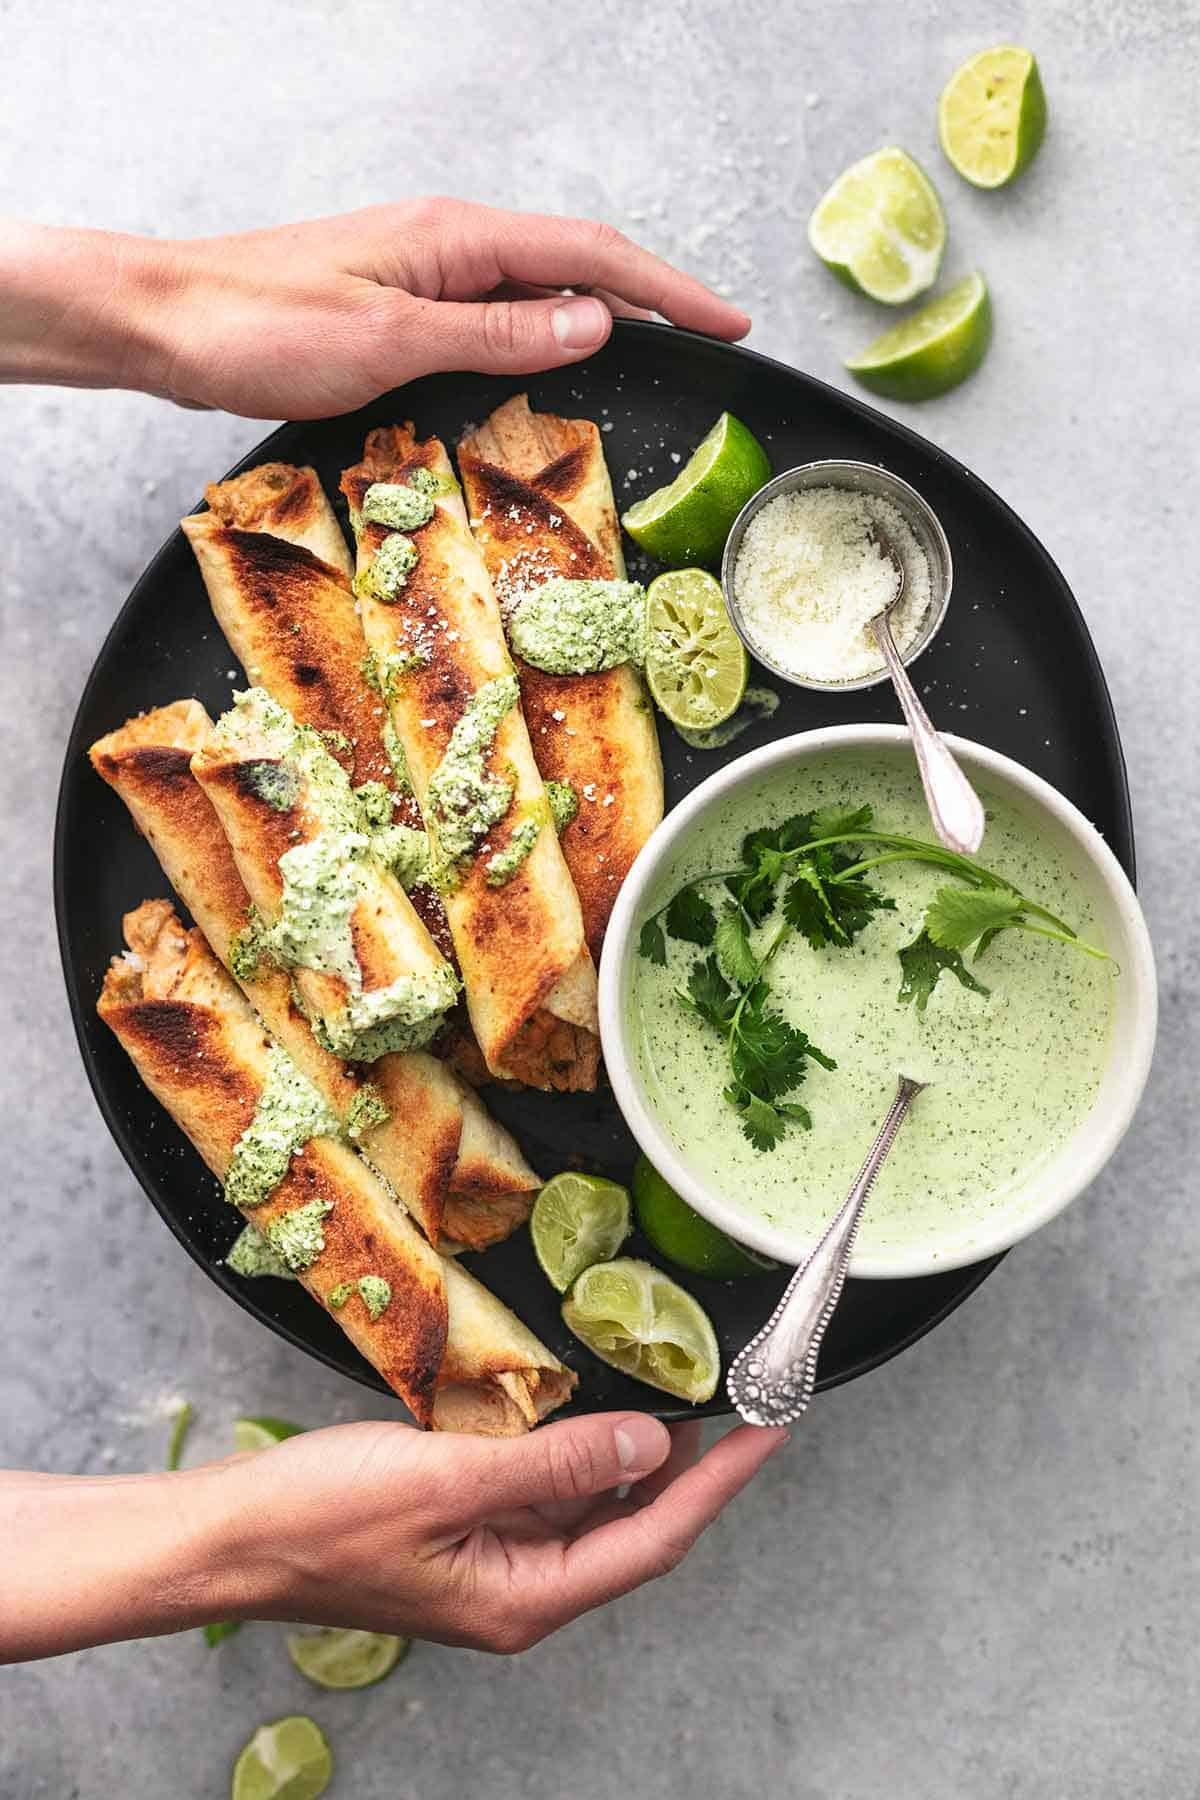 hands holding plate of taquitos